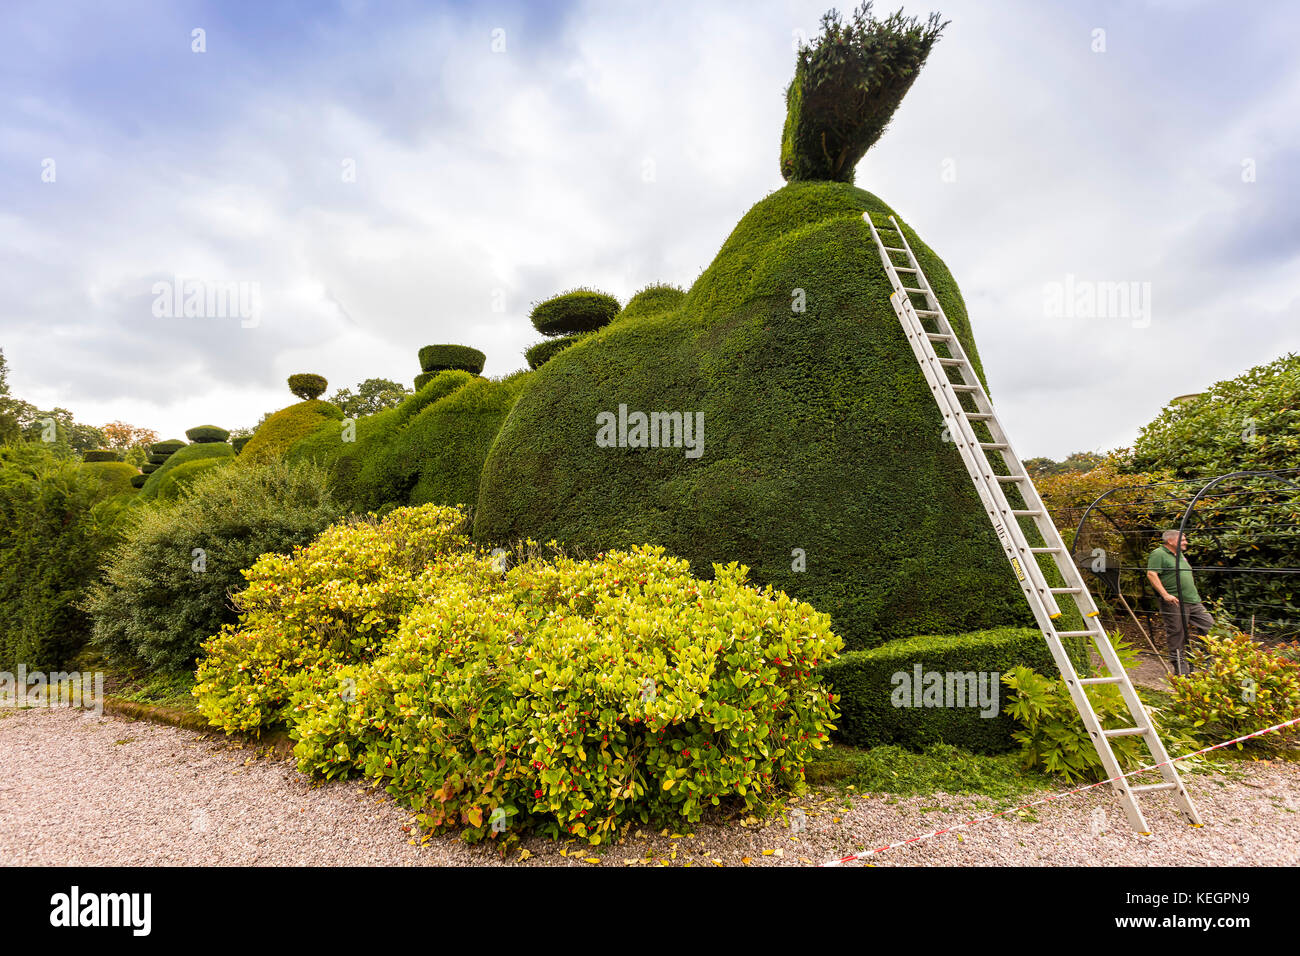 Maintenance in progress of a large topiary hedging.. - Stock Image